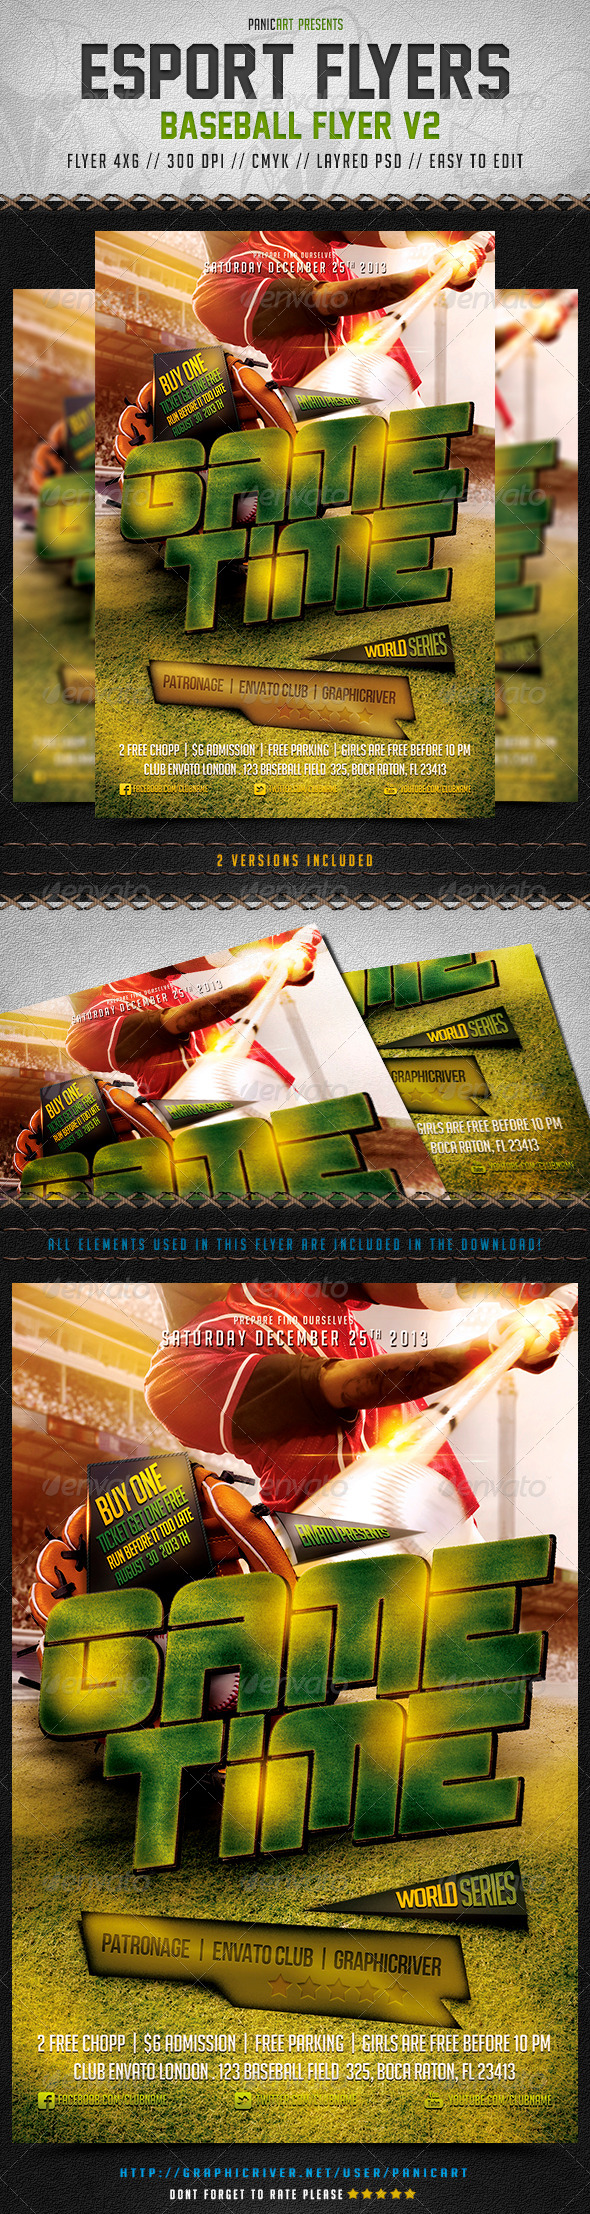 Baseball Flyer V Graphicriver Baseball Flyer V Description